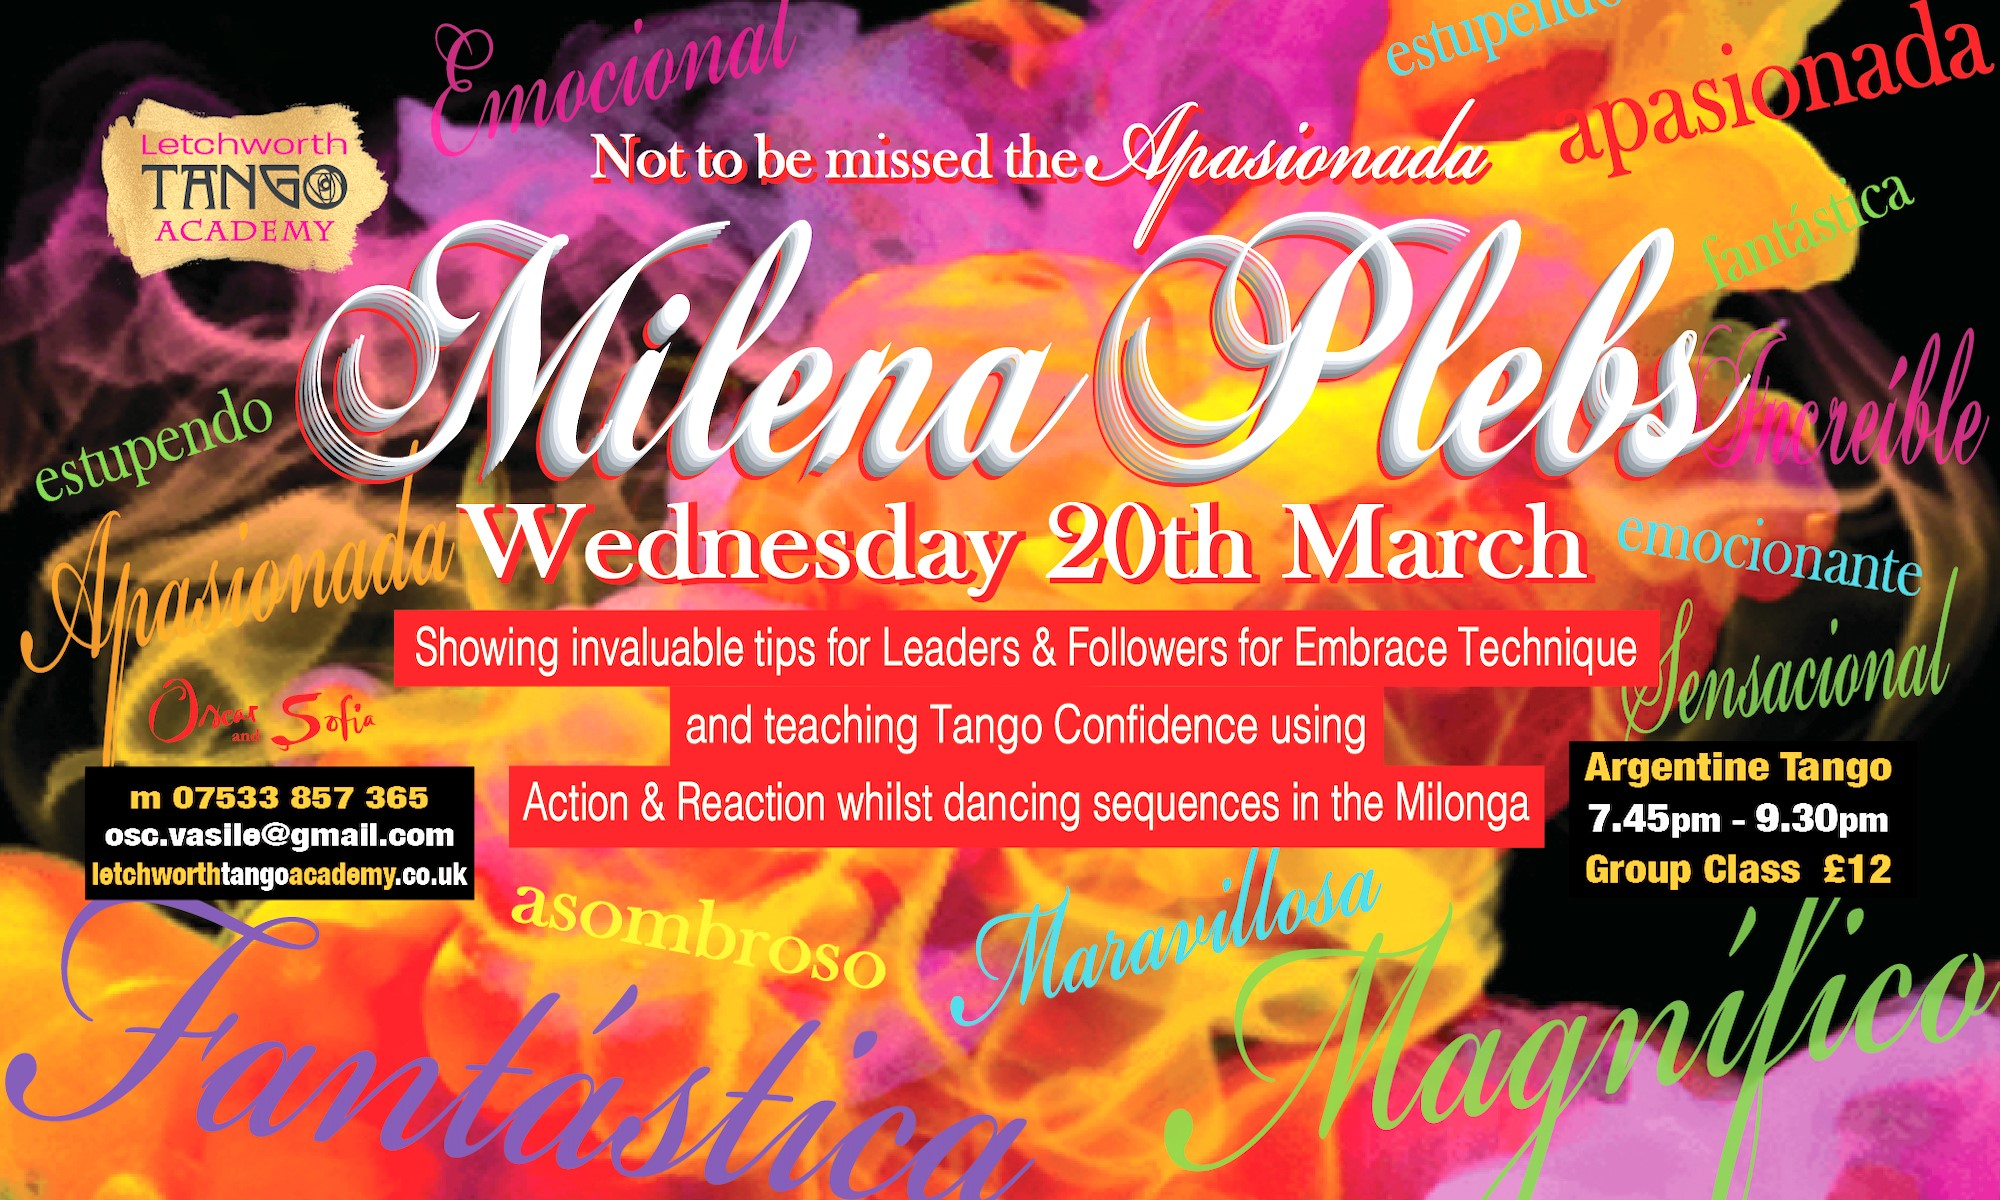 Special Class with Milena Plebs @ Jackmans Community Centre